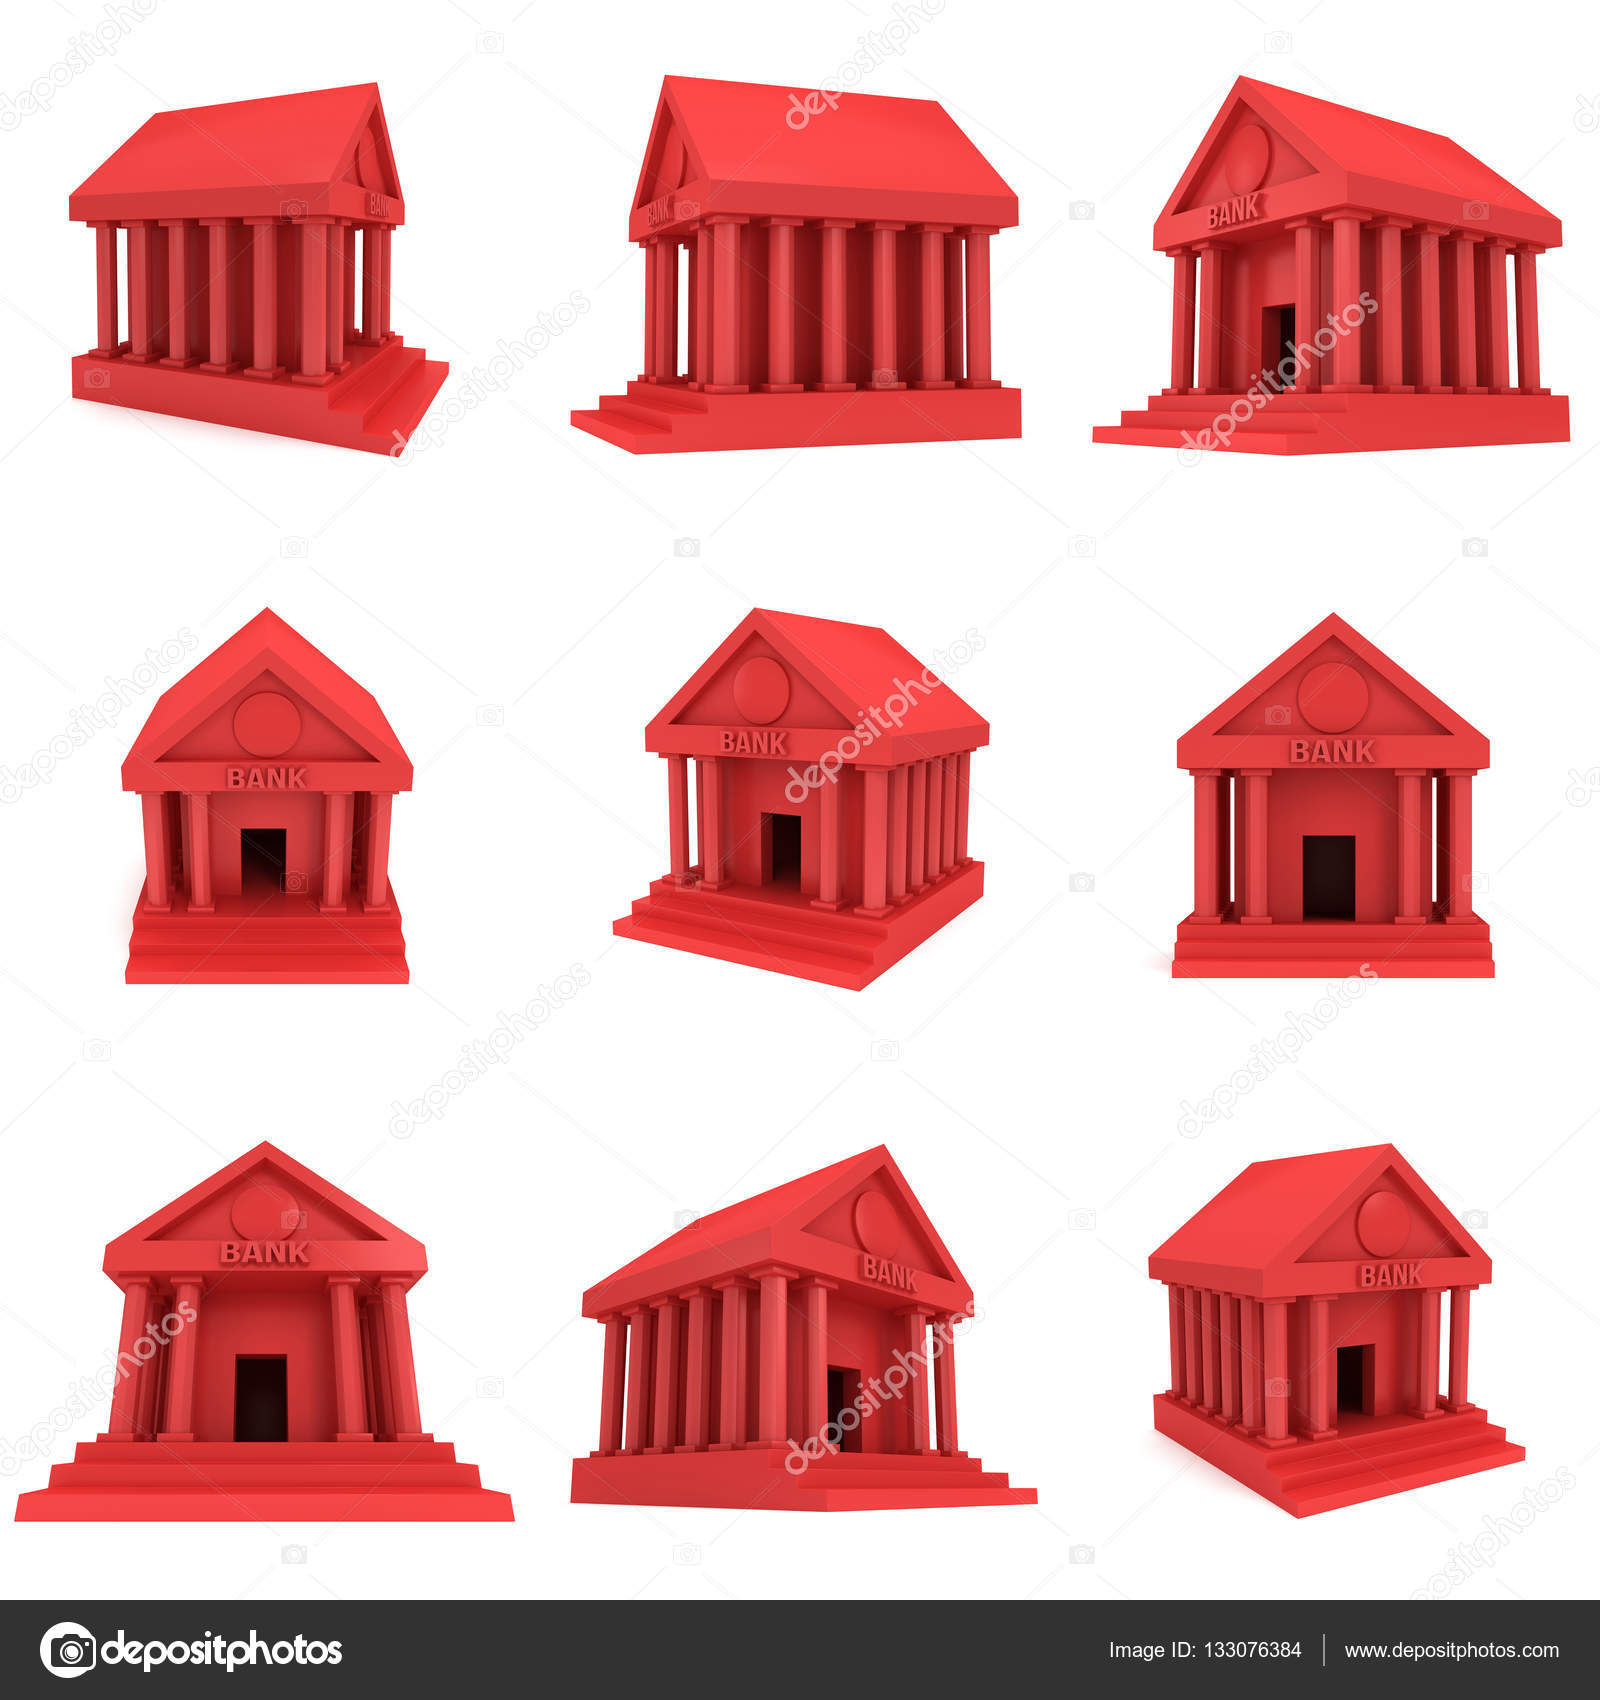 Red Bank building 3d icon — Stock Photo © newb1 #133076384